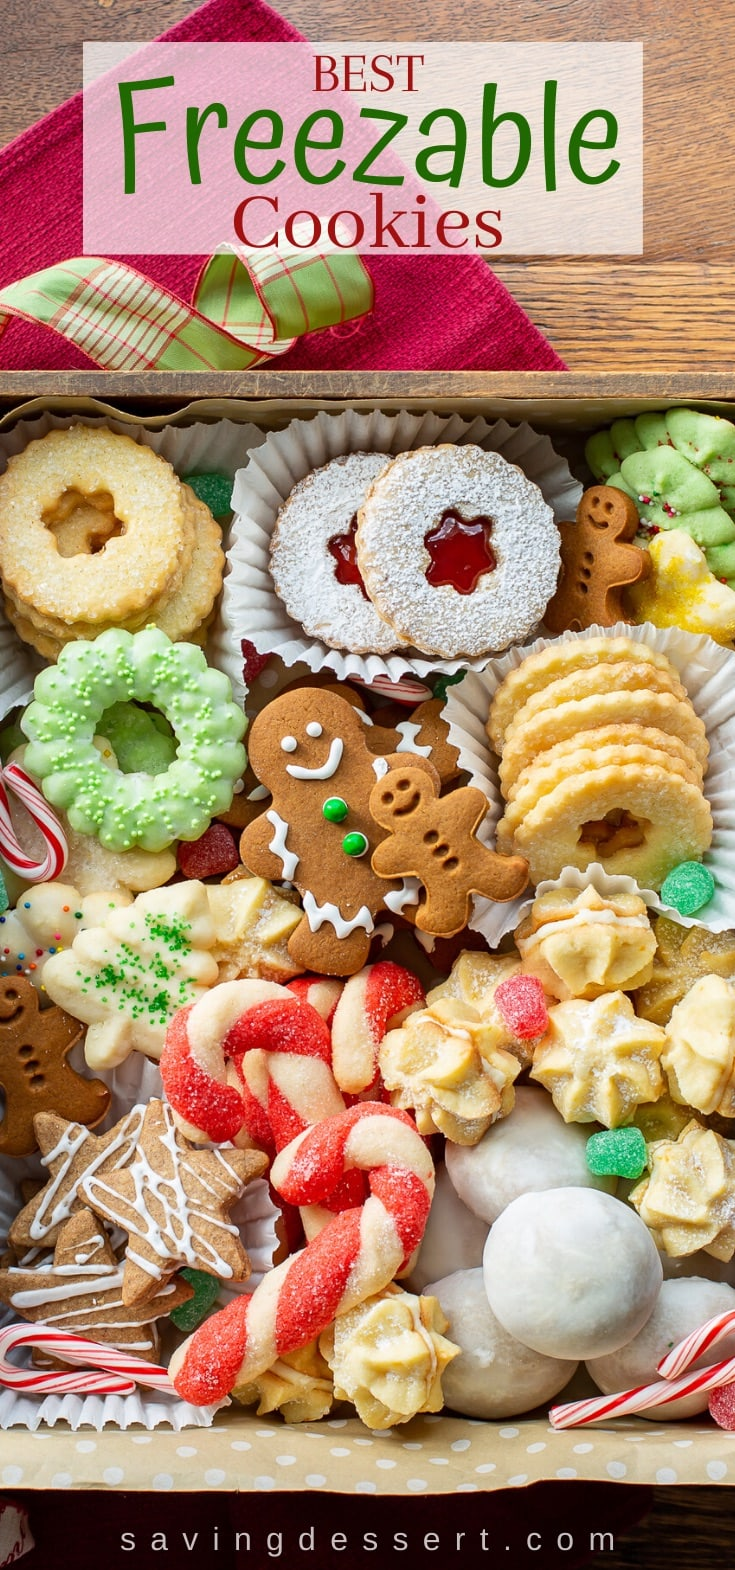 A colorful box of an assortment of Christmas cookies